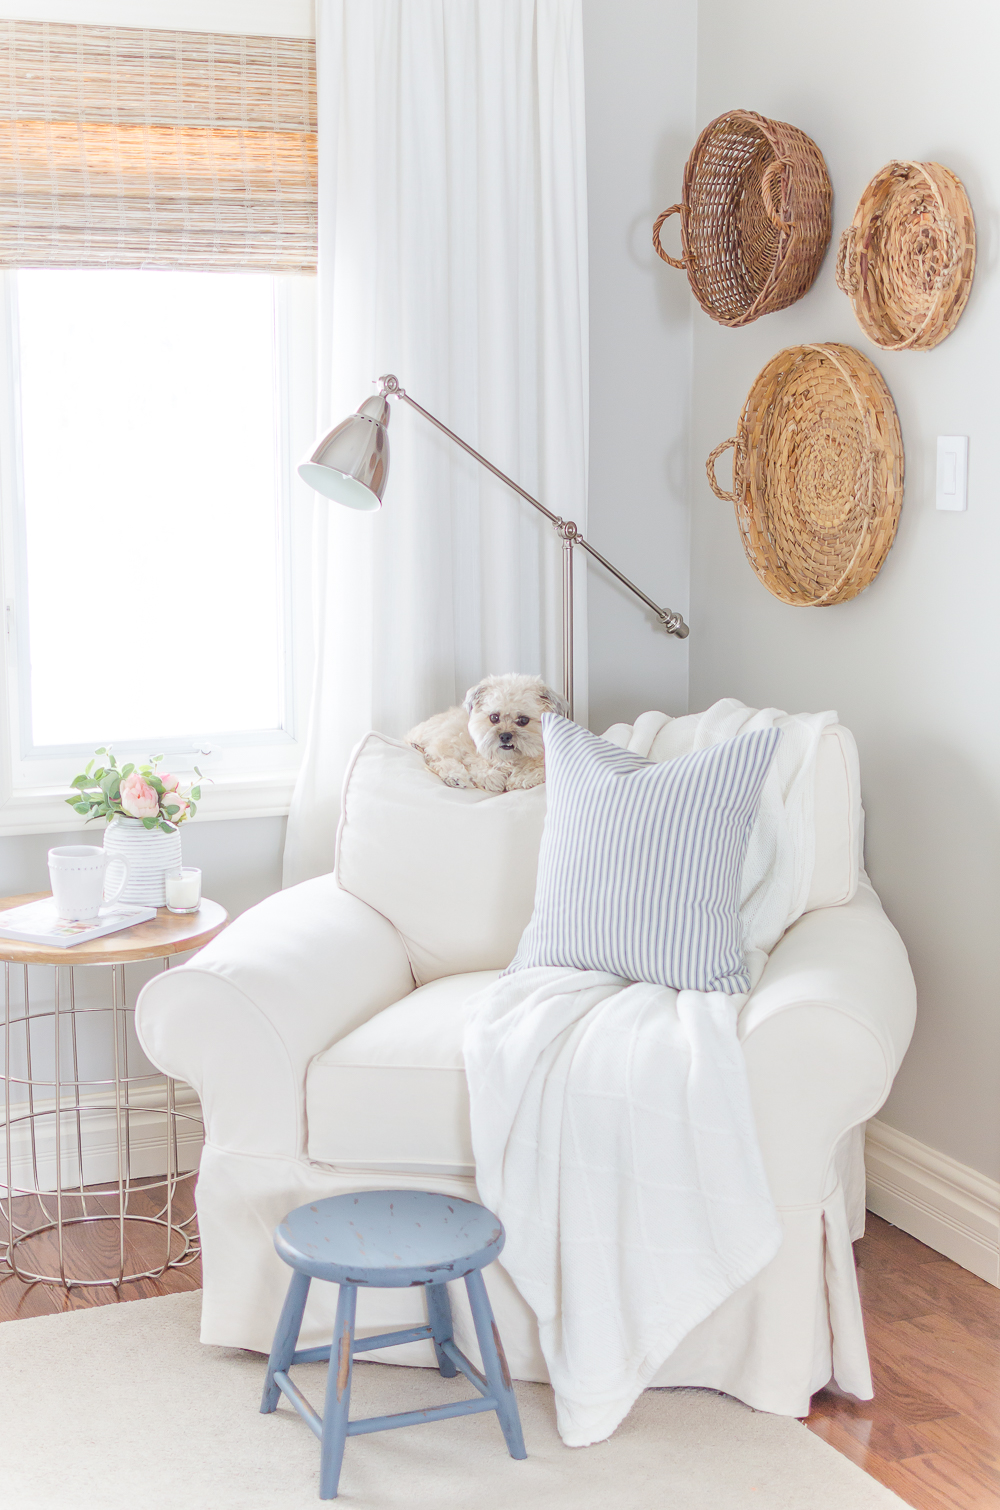 A distressed foot stool adds character to this cozy modern farmhouse. Find the project in A Touch of Farmhouse Charm by Liz Fourez.